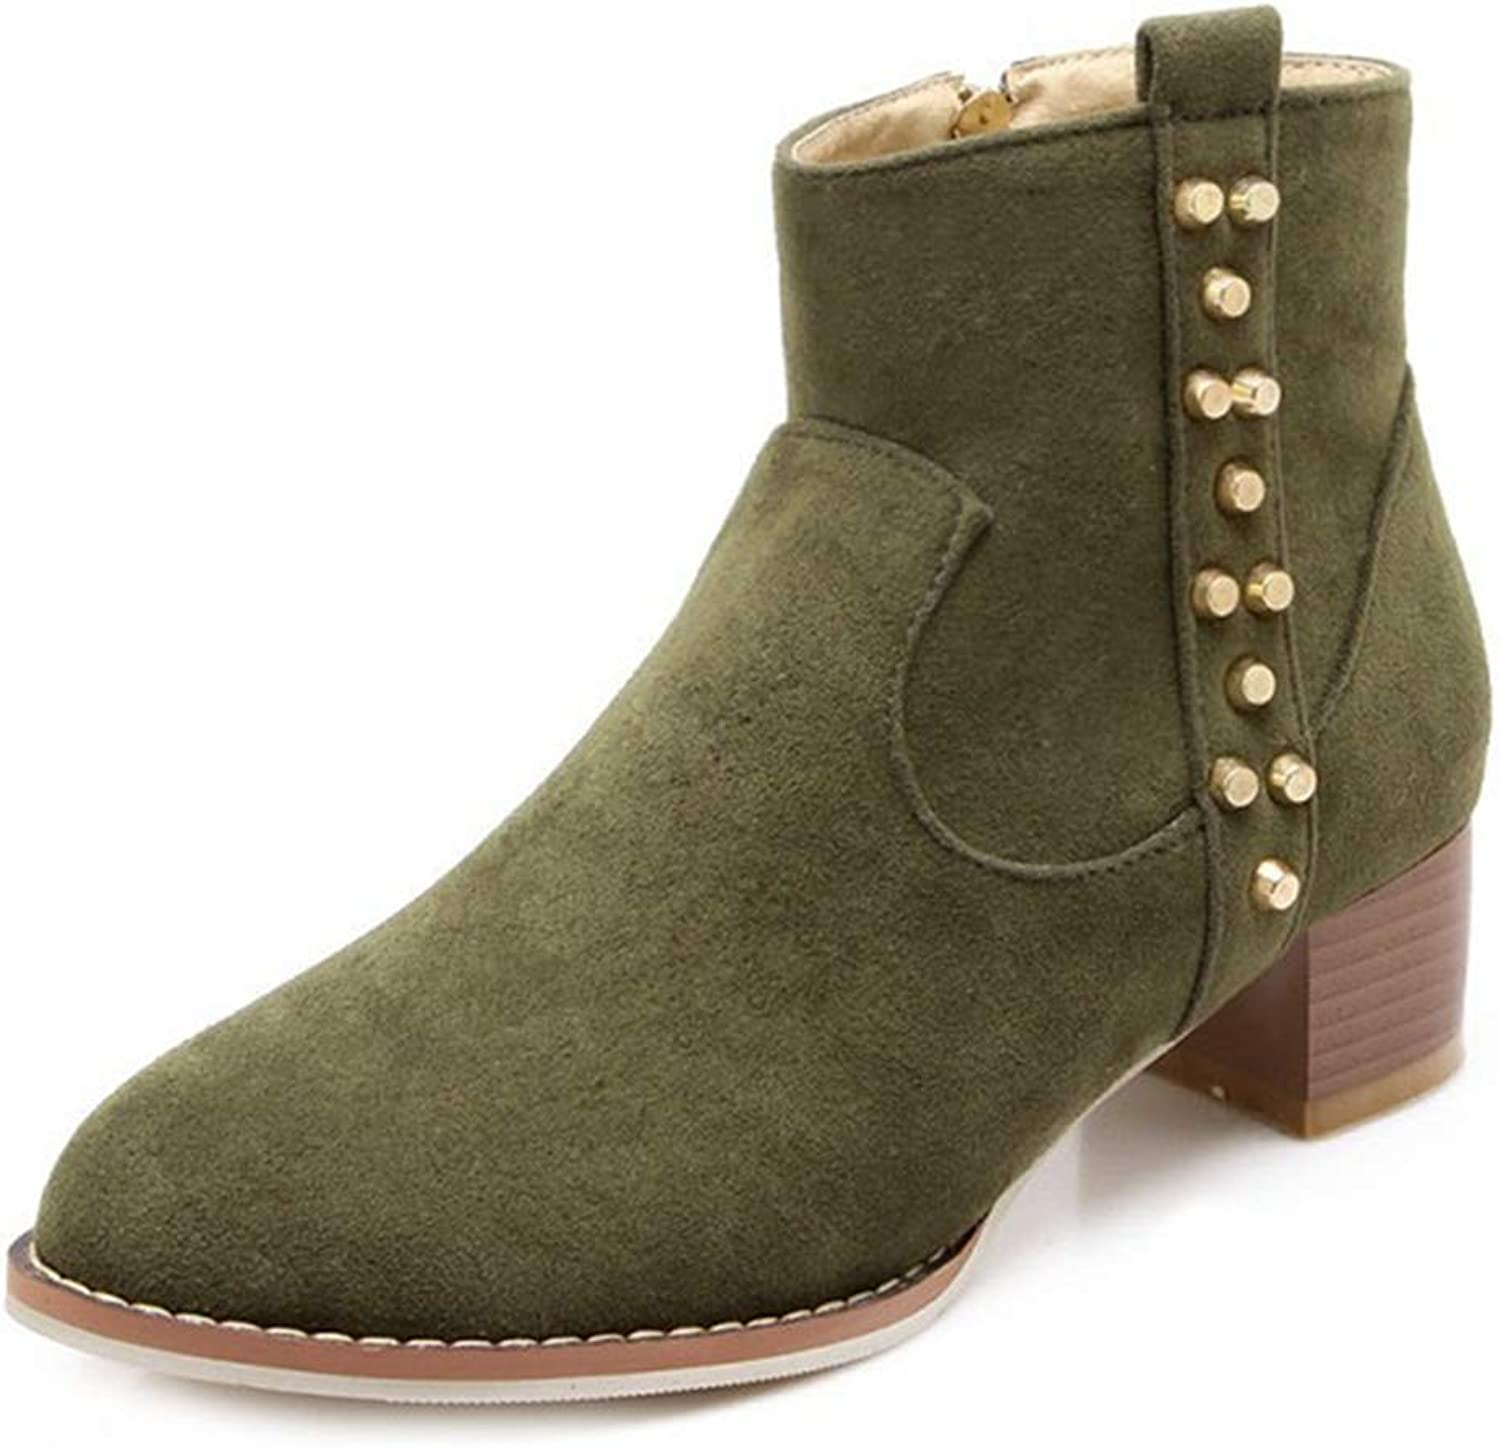 GIY Women's Retro Chunky Mid Heel Ankle Boots Suede Platform Bootie Stacked Heel Rivets Martin Short Boot